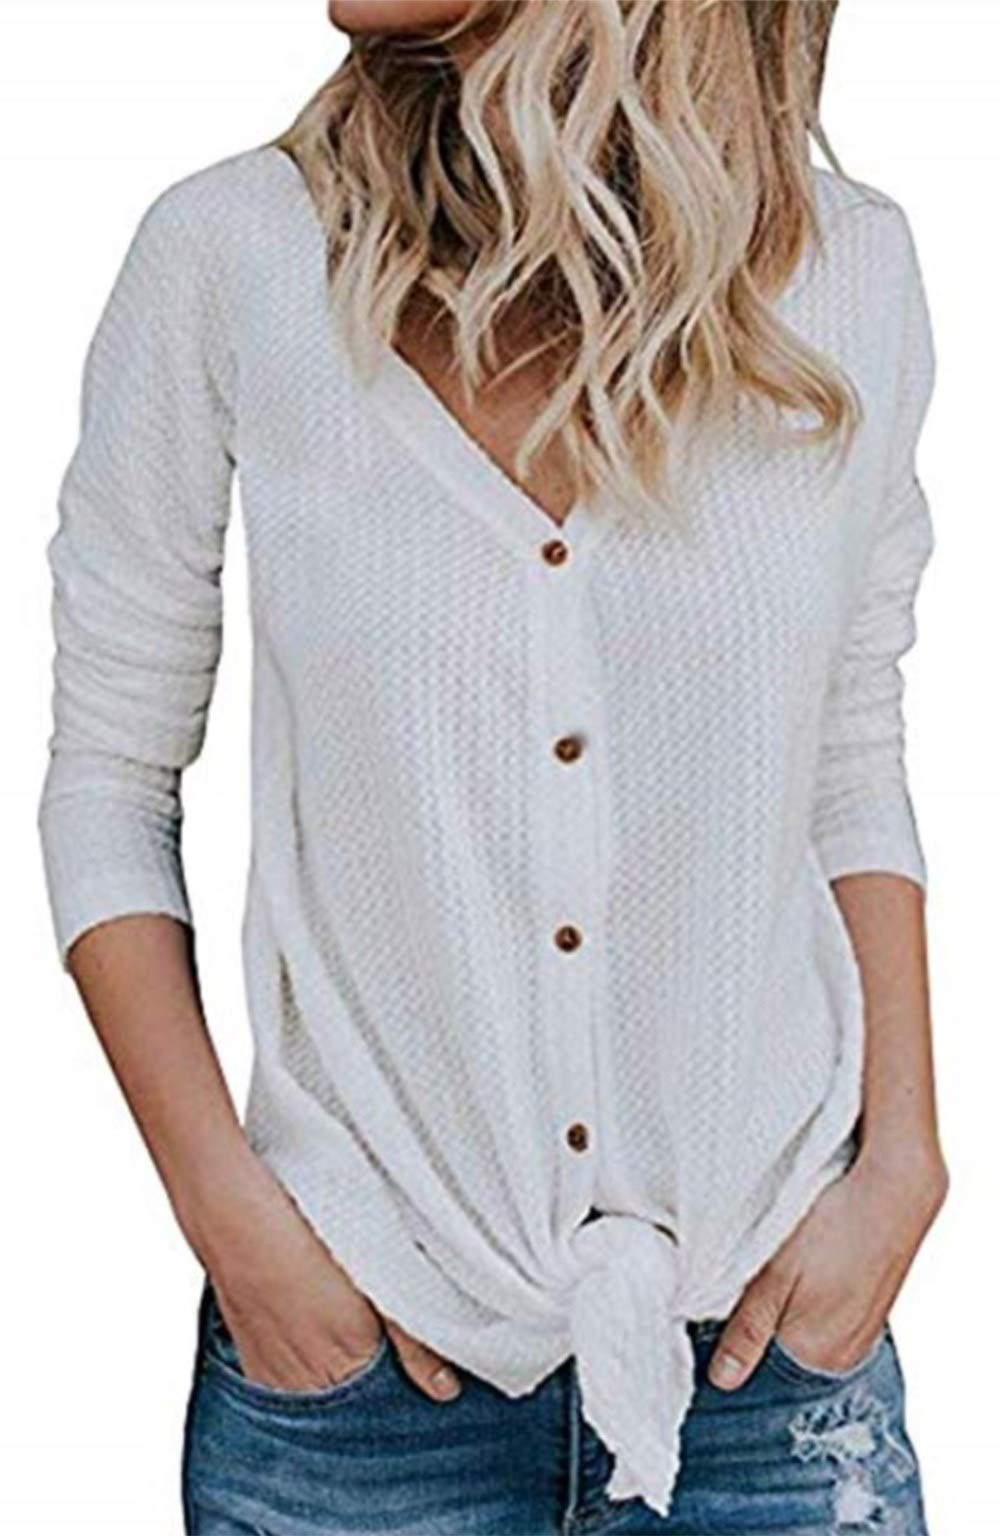 elescat Womens Sweaters Knited Cardigan Long Sleeve Tops Knot Henley Shirts V Neck Blouses (M,White)